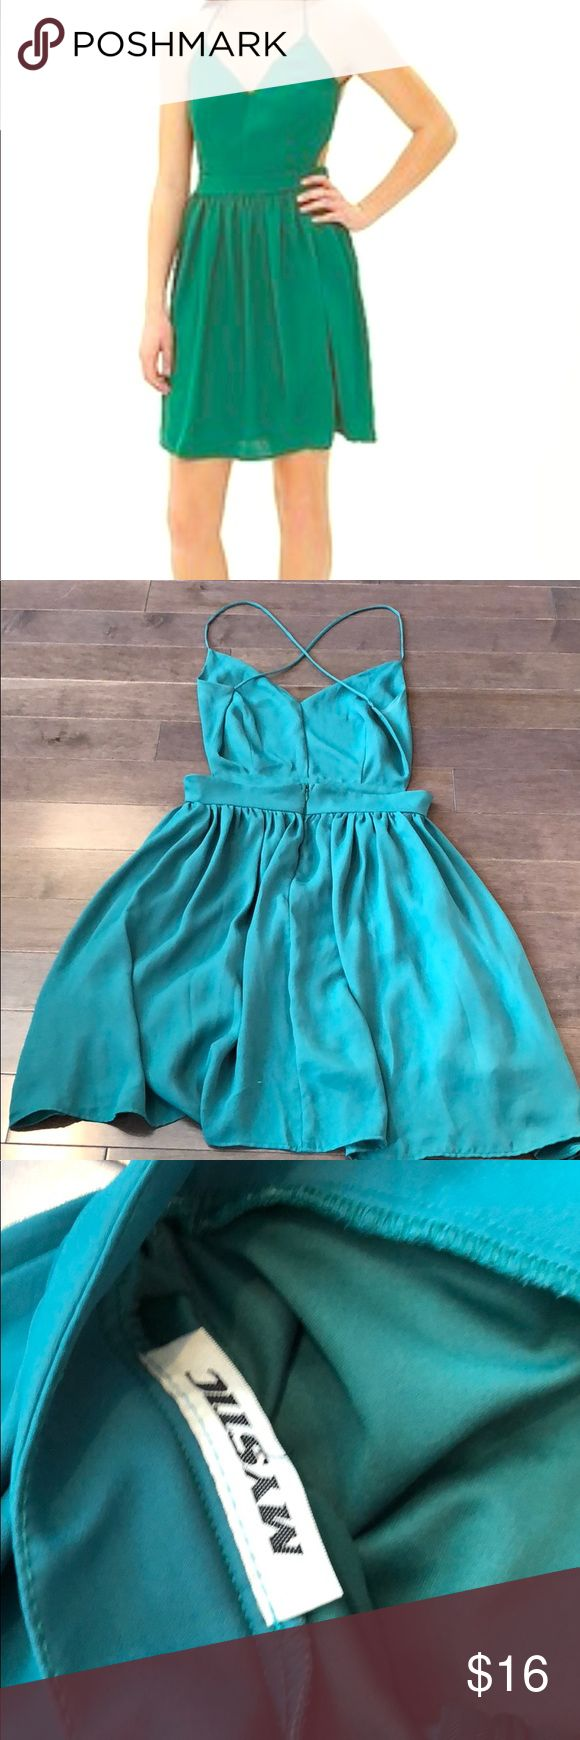 Emerald green backless Party dress- M Such a fun dress for a date or girls night. Cut out on sides, open back with cross cross straps. Hidden zip. Full skirt. Great for dancing. Mystic Dresses Backless